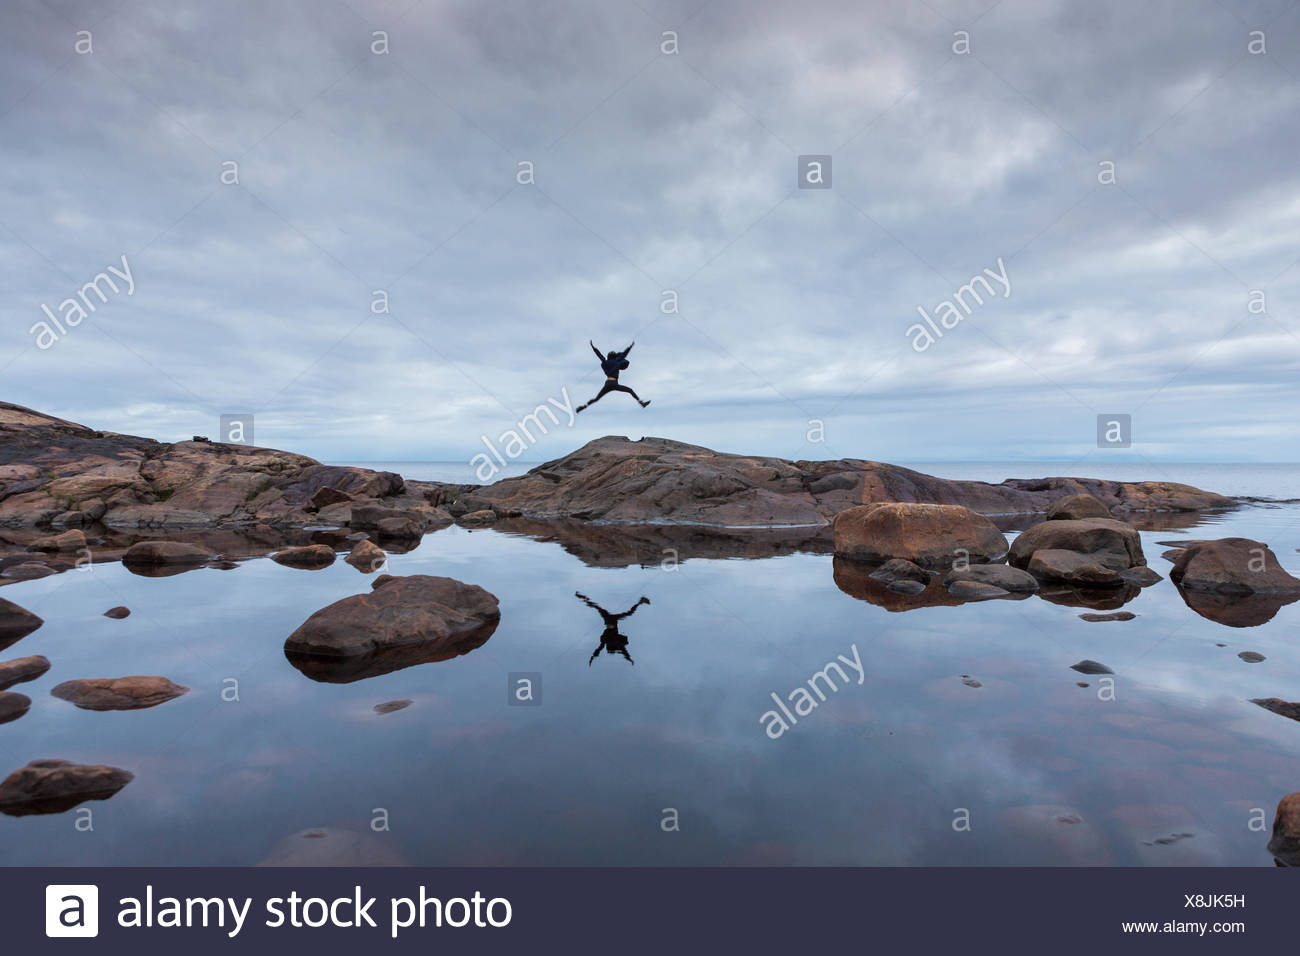 Woman jumping on rock by a lake in Vasterbotten, Sweden - Stock Image